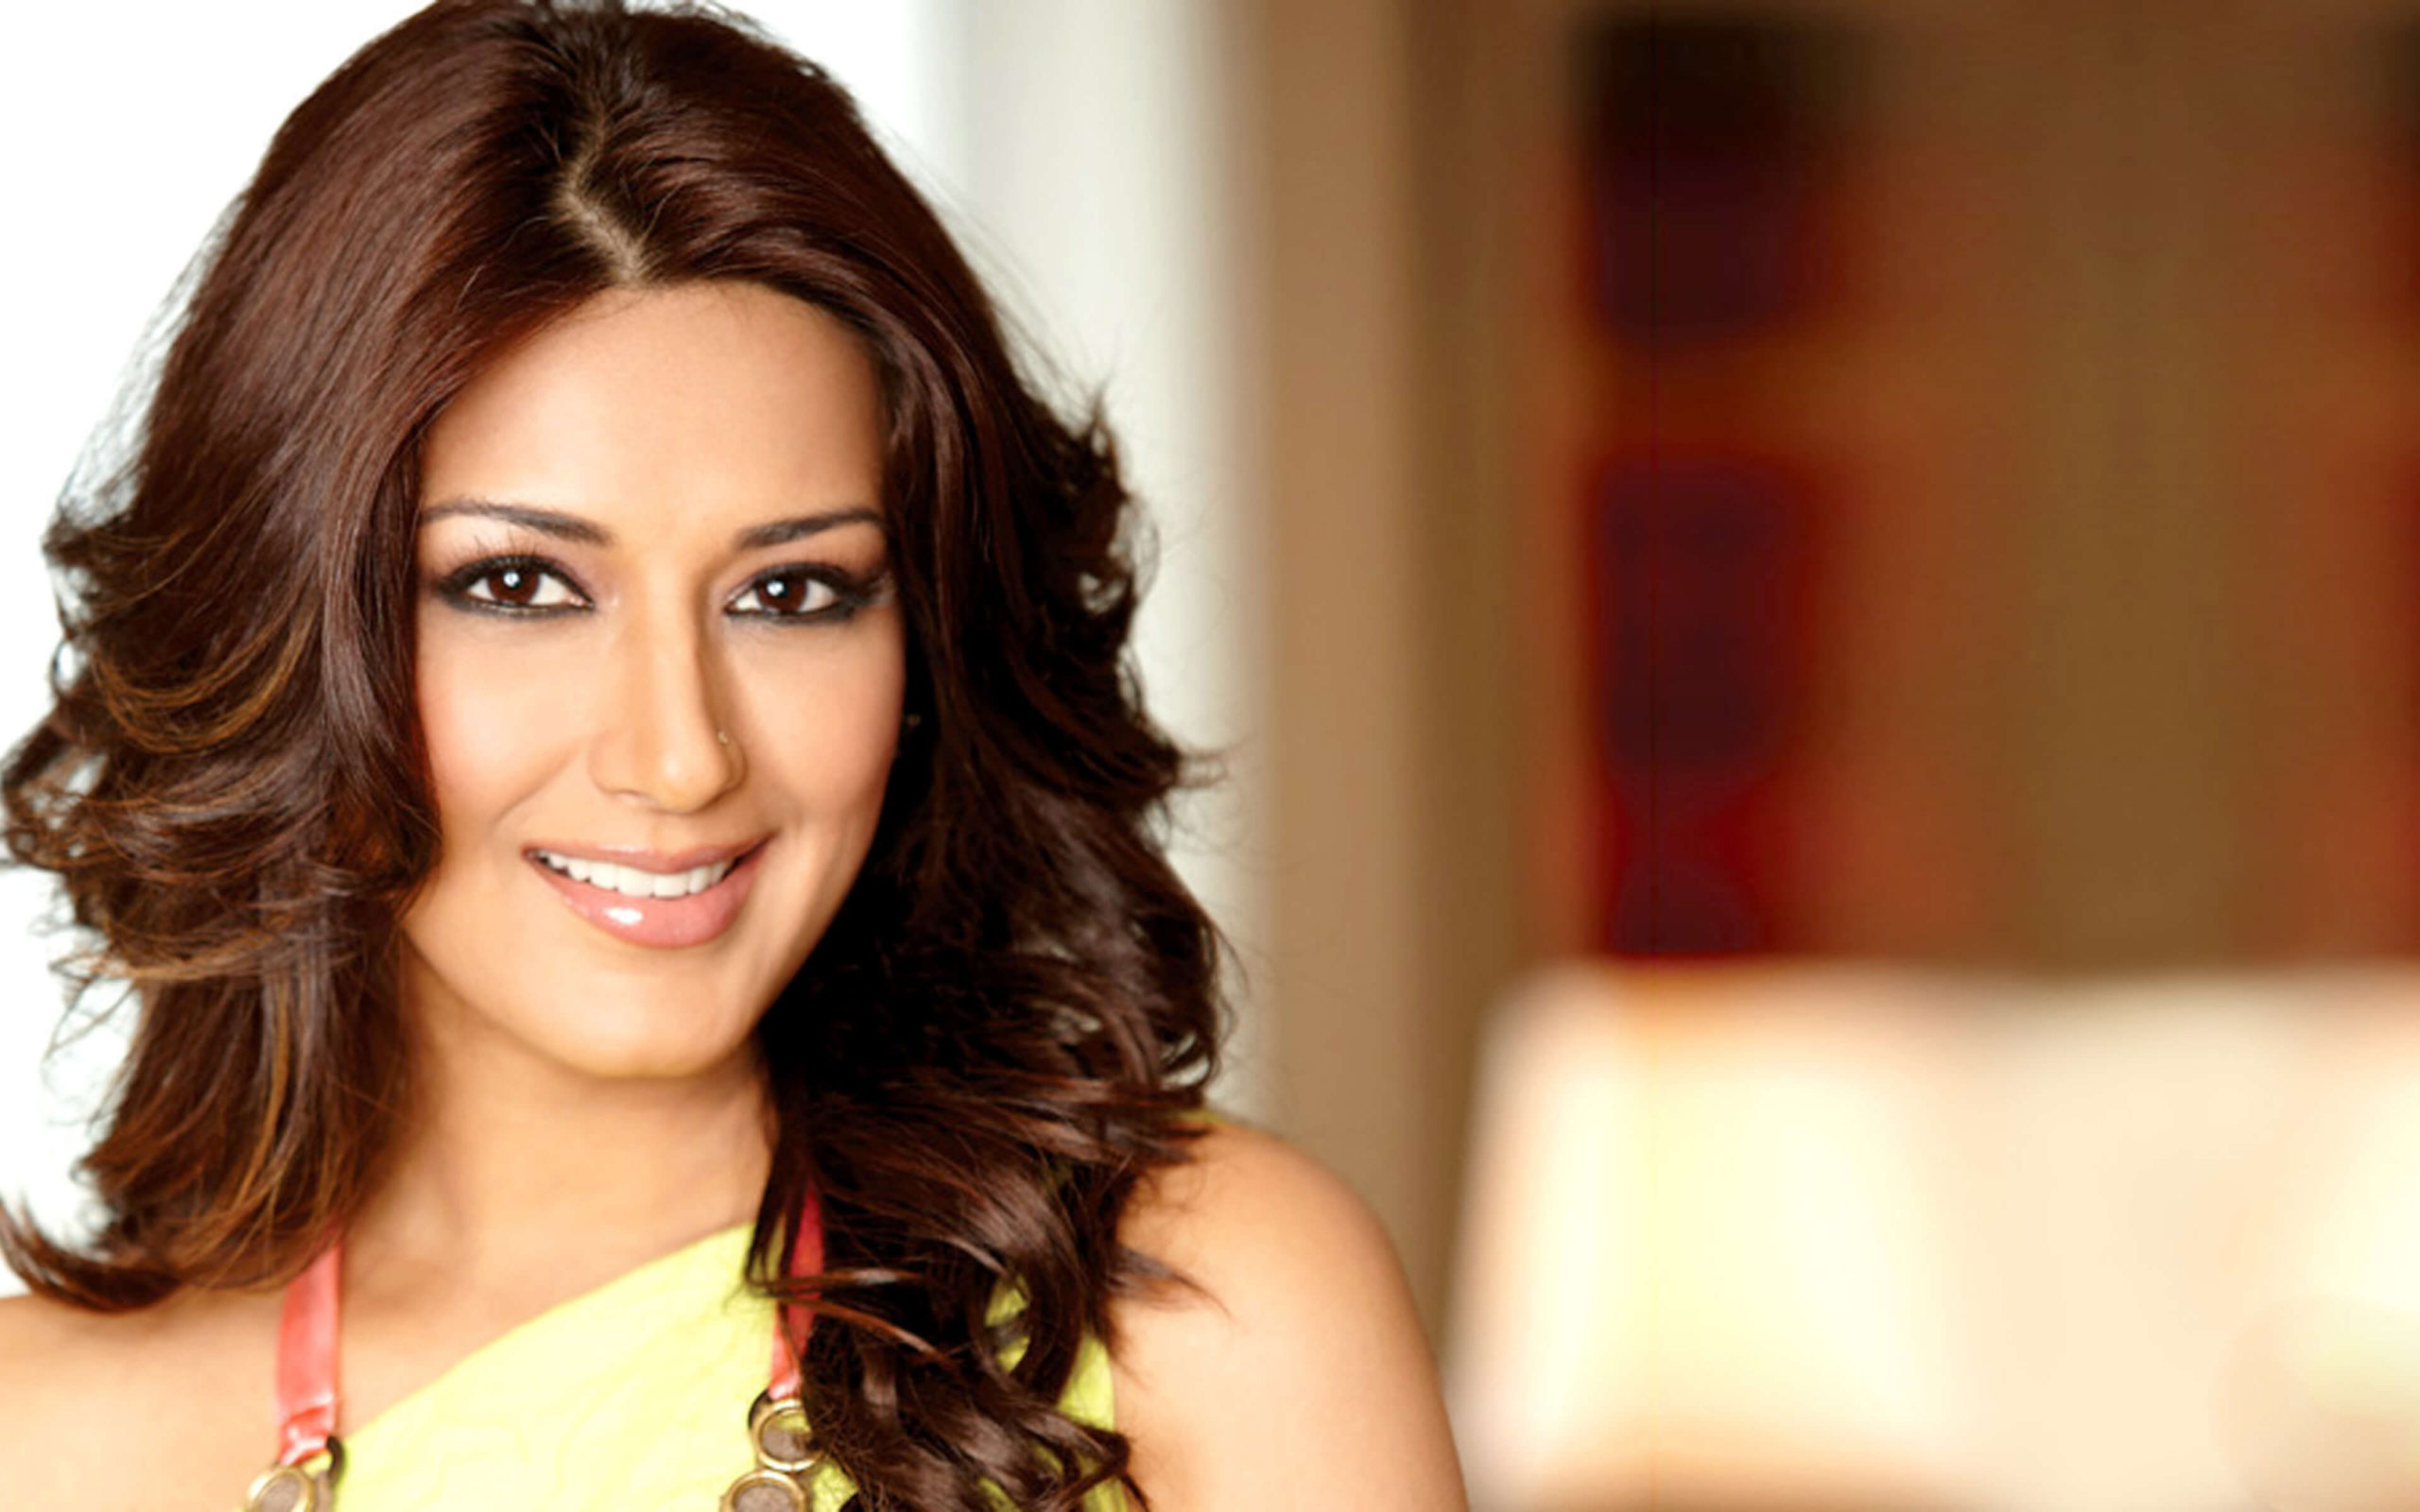 Sonali Bendre Cancer, Death, Photos(image), Family, Husband, Biography, Date Of Birth, Movies, Latest News, Haircut, Net Worth, Married, Education, Son, Awards, Instagram, Wiki, Twitter, Faceb ( (45)